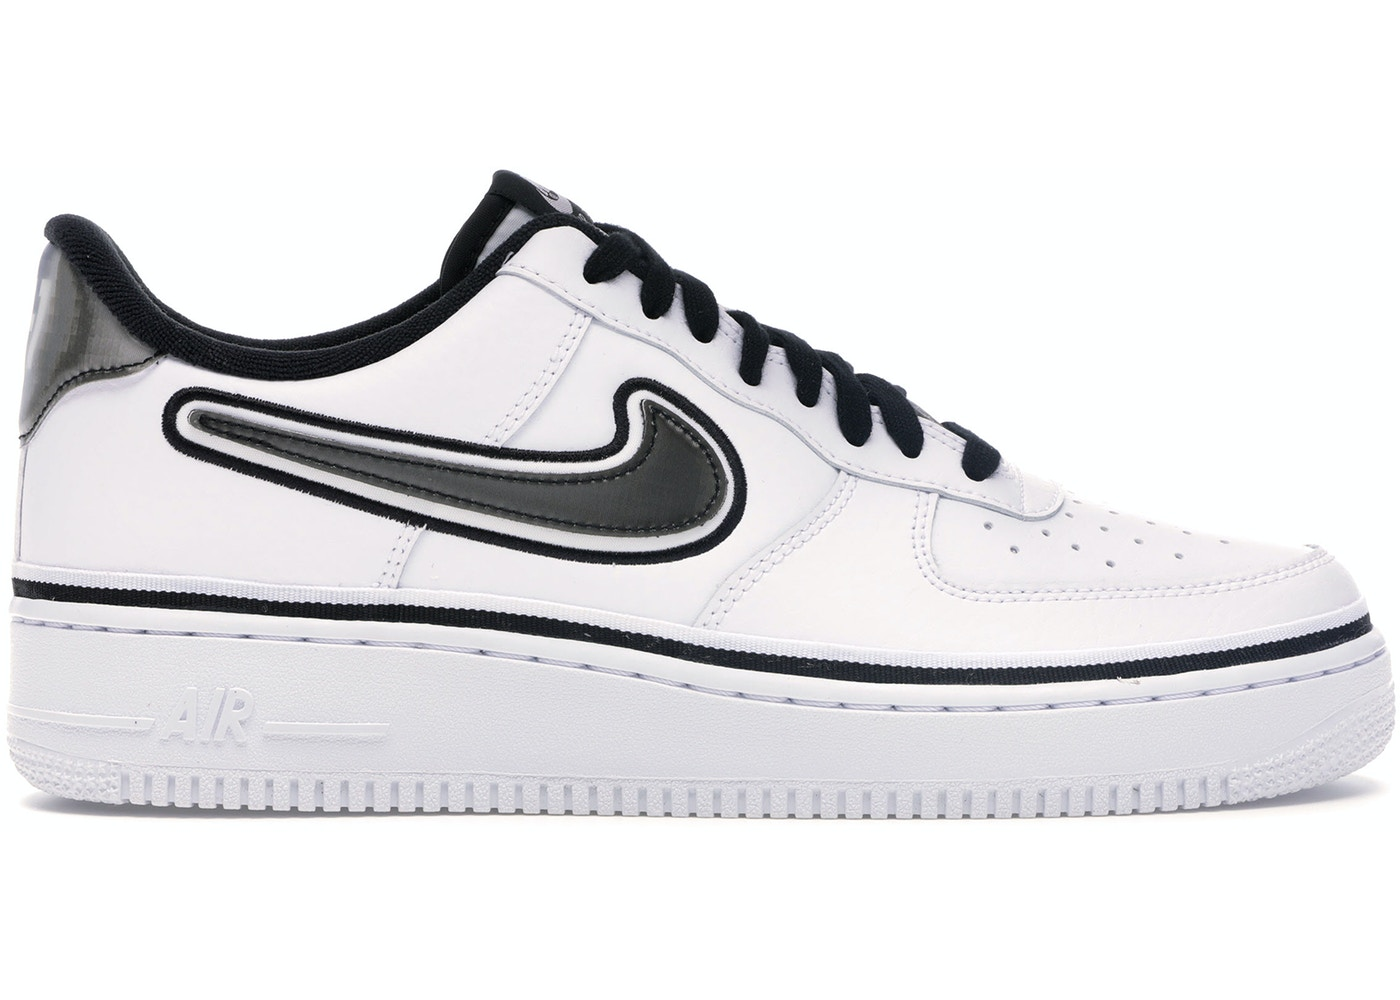 sale new authentic new arrive Air Force 1 Low Sport NBA White Black